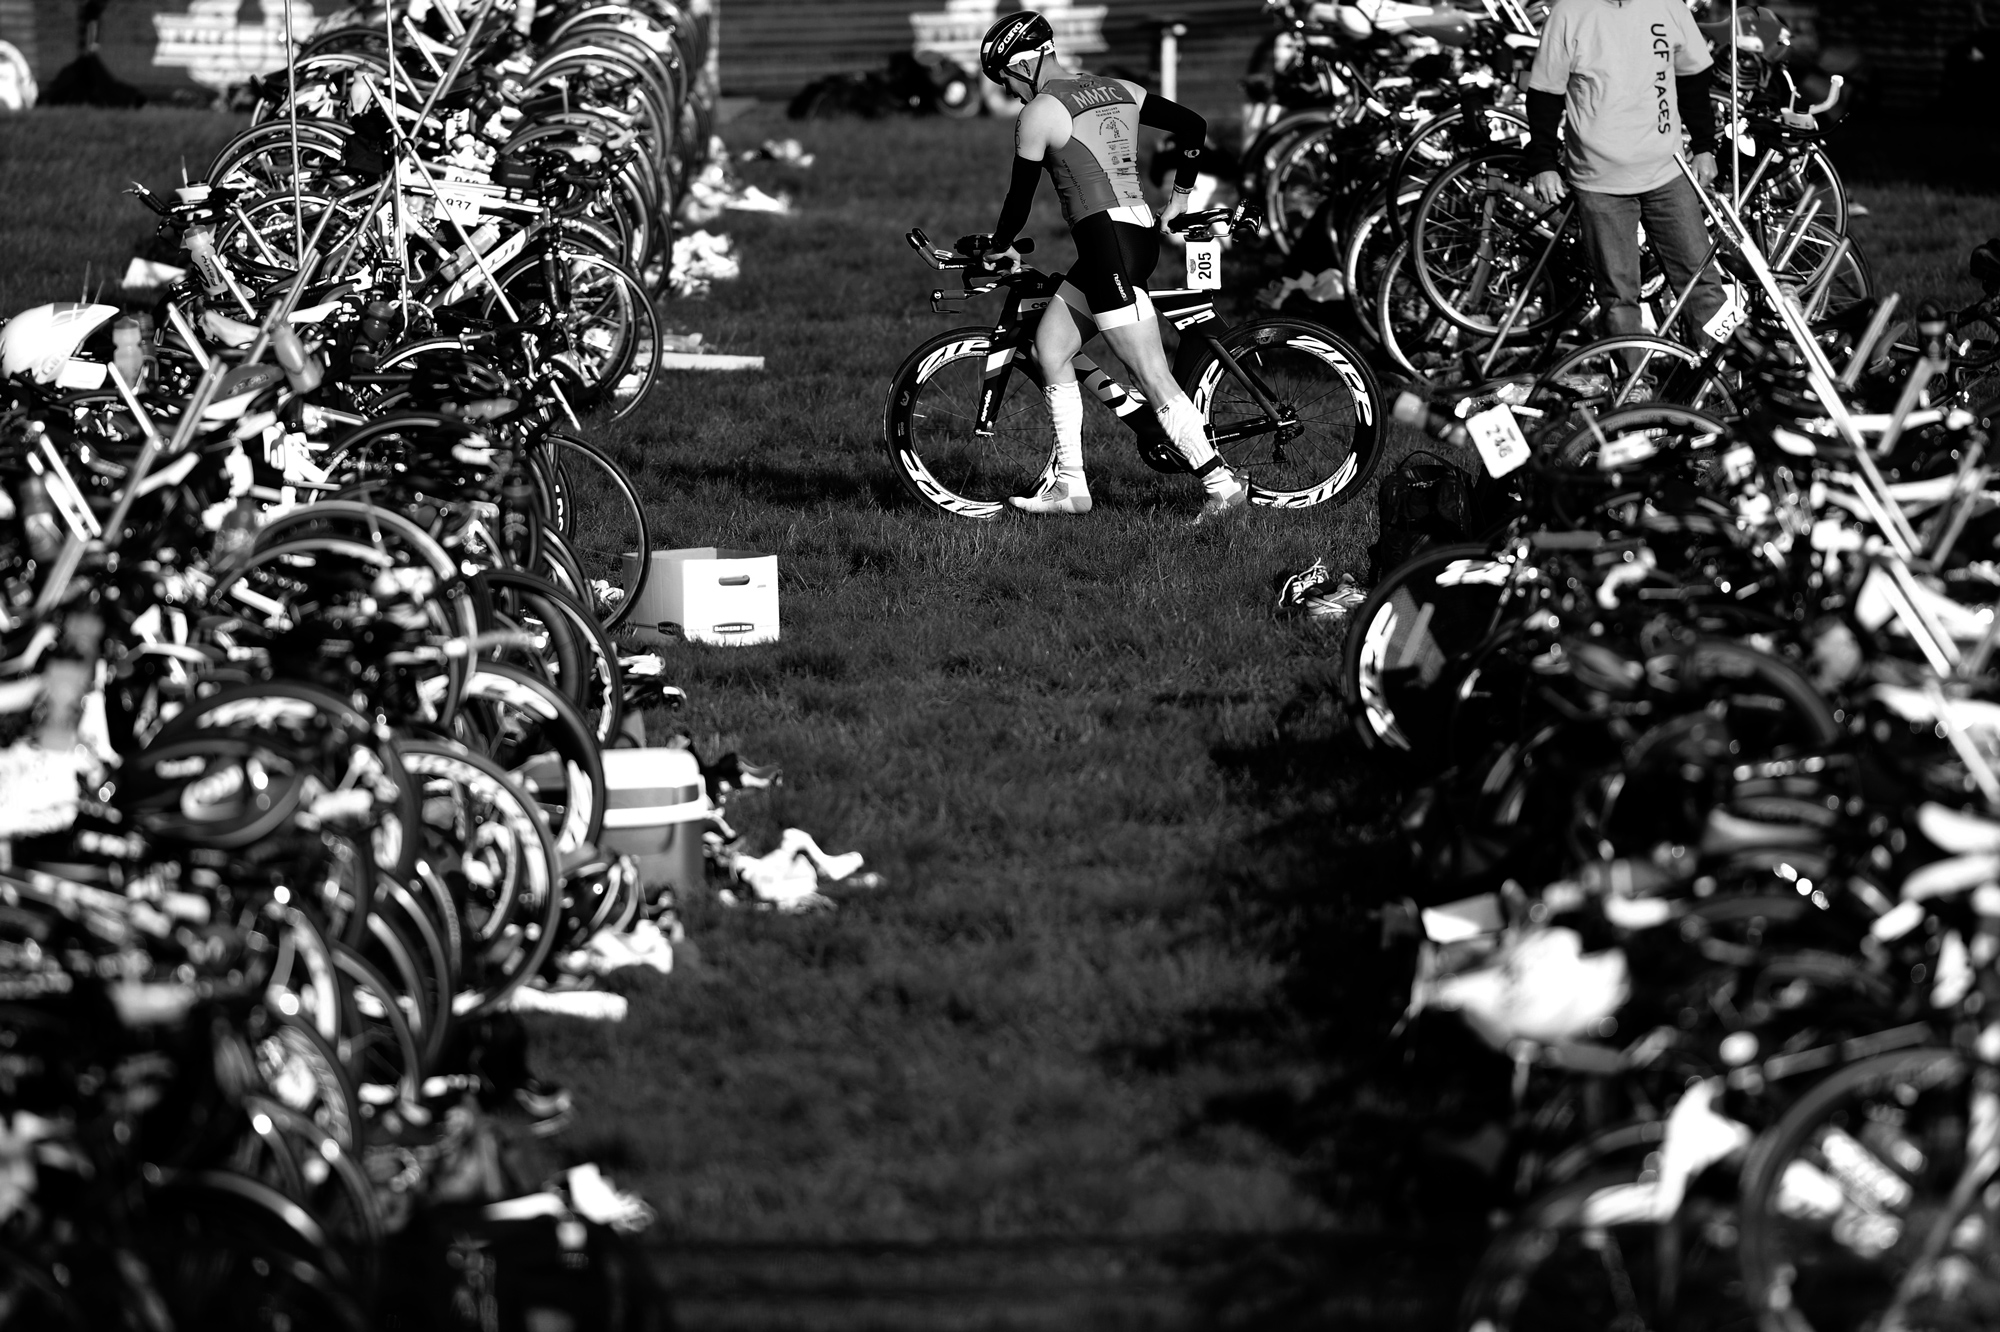 A participant of the 31st annual Columbia Triathlon at Centennial Park grabs his bike during the race in Ellicott City, Maryland on May 18, 2014.